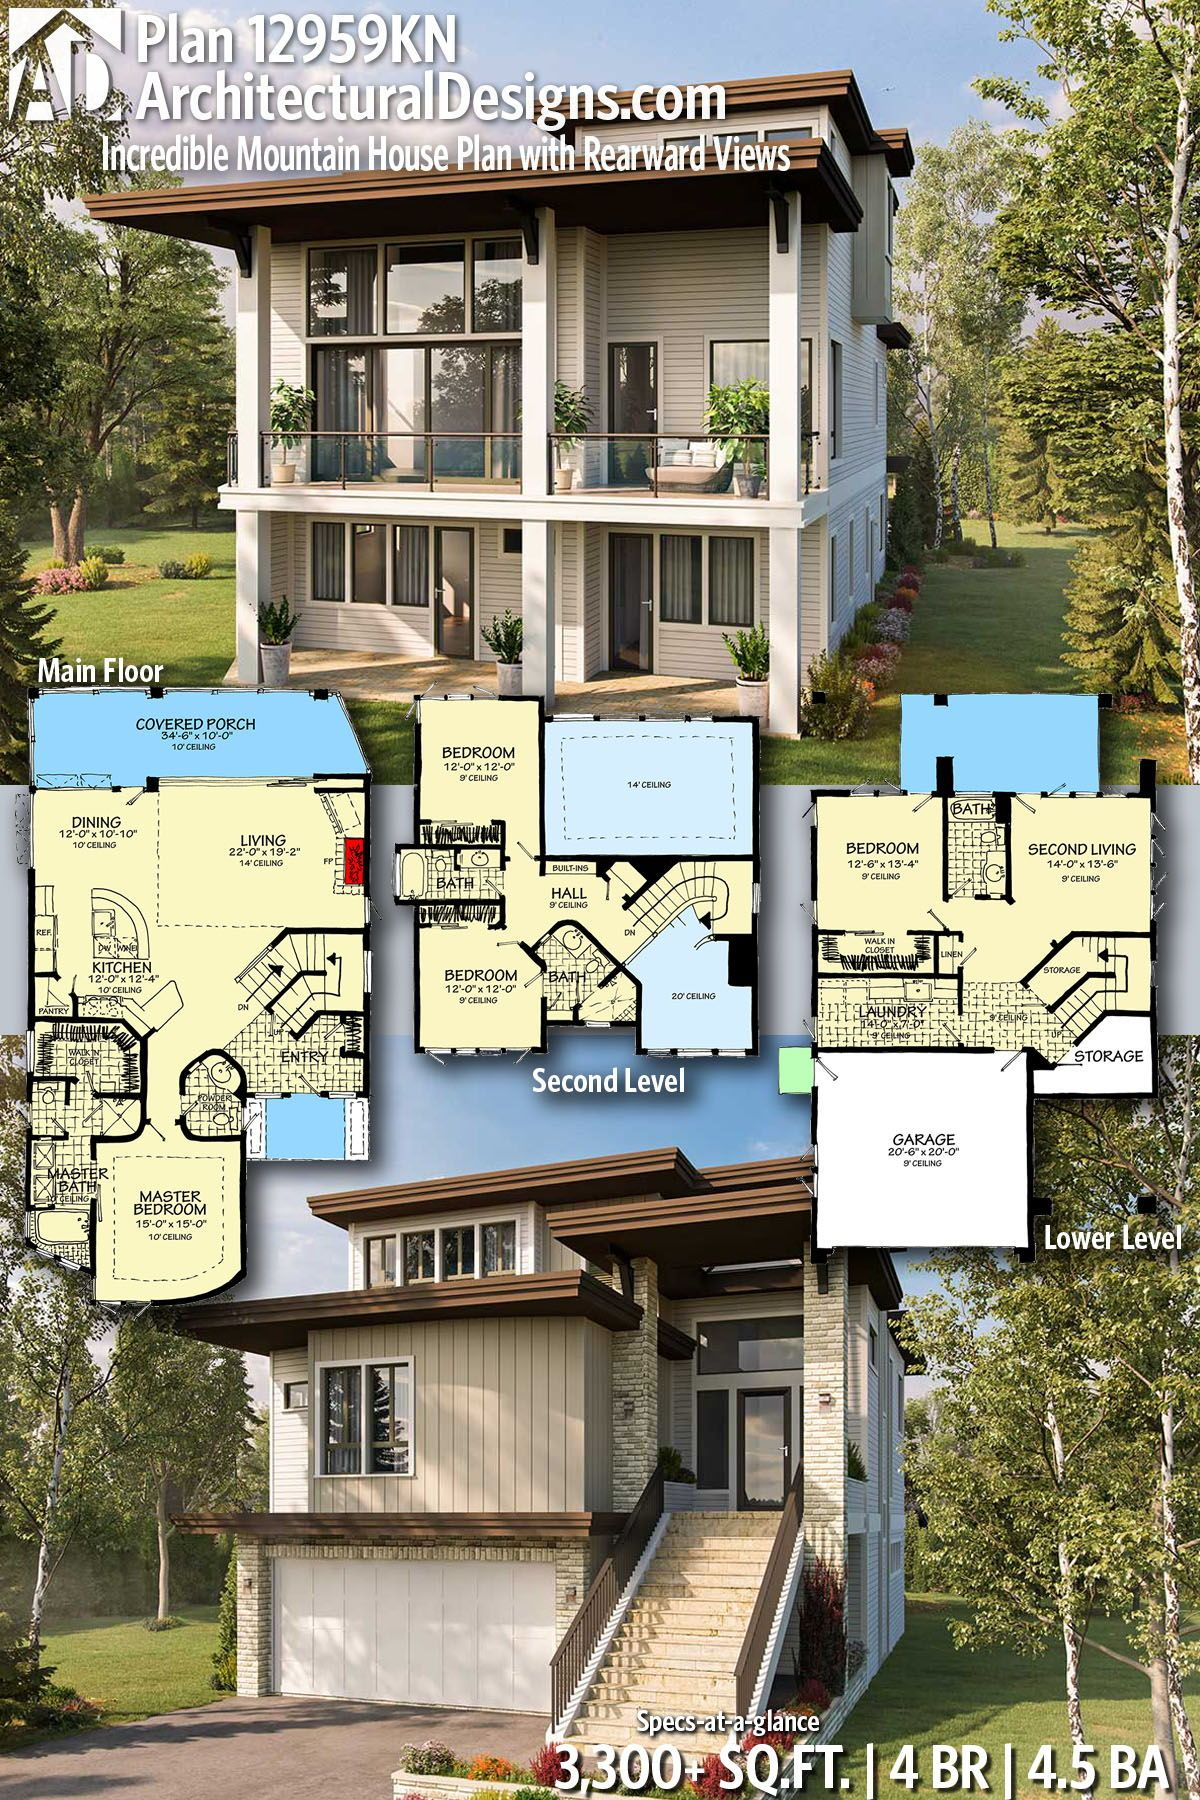 Architectural designs home plan kn gives you bedrooms baths and sq also best homes for the sloping lot images in architecture rh pinterest